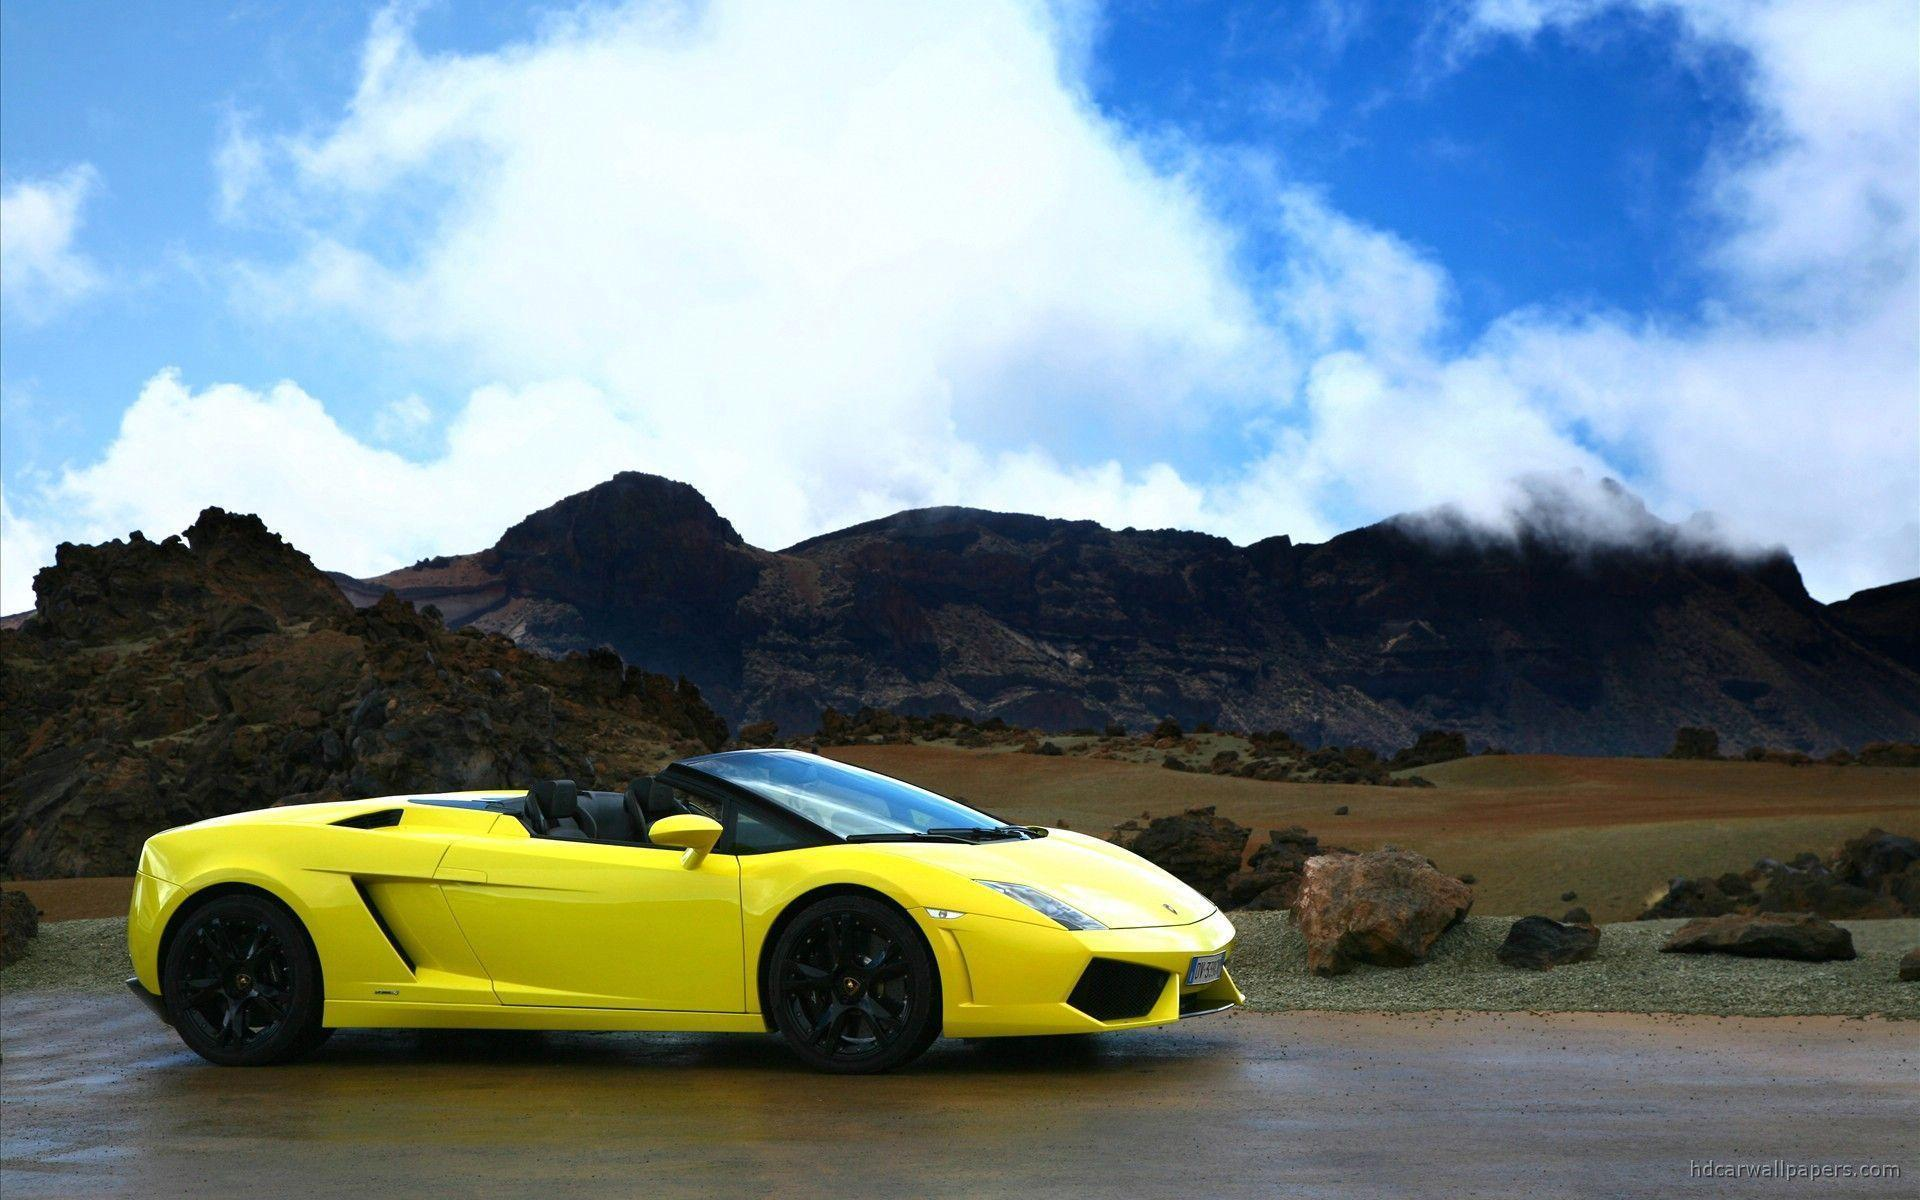 lamborghini gallardo wallpaper free download 1412 wallpaper hd - Lamborghini Gallardo Wallpaper Blue